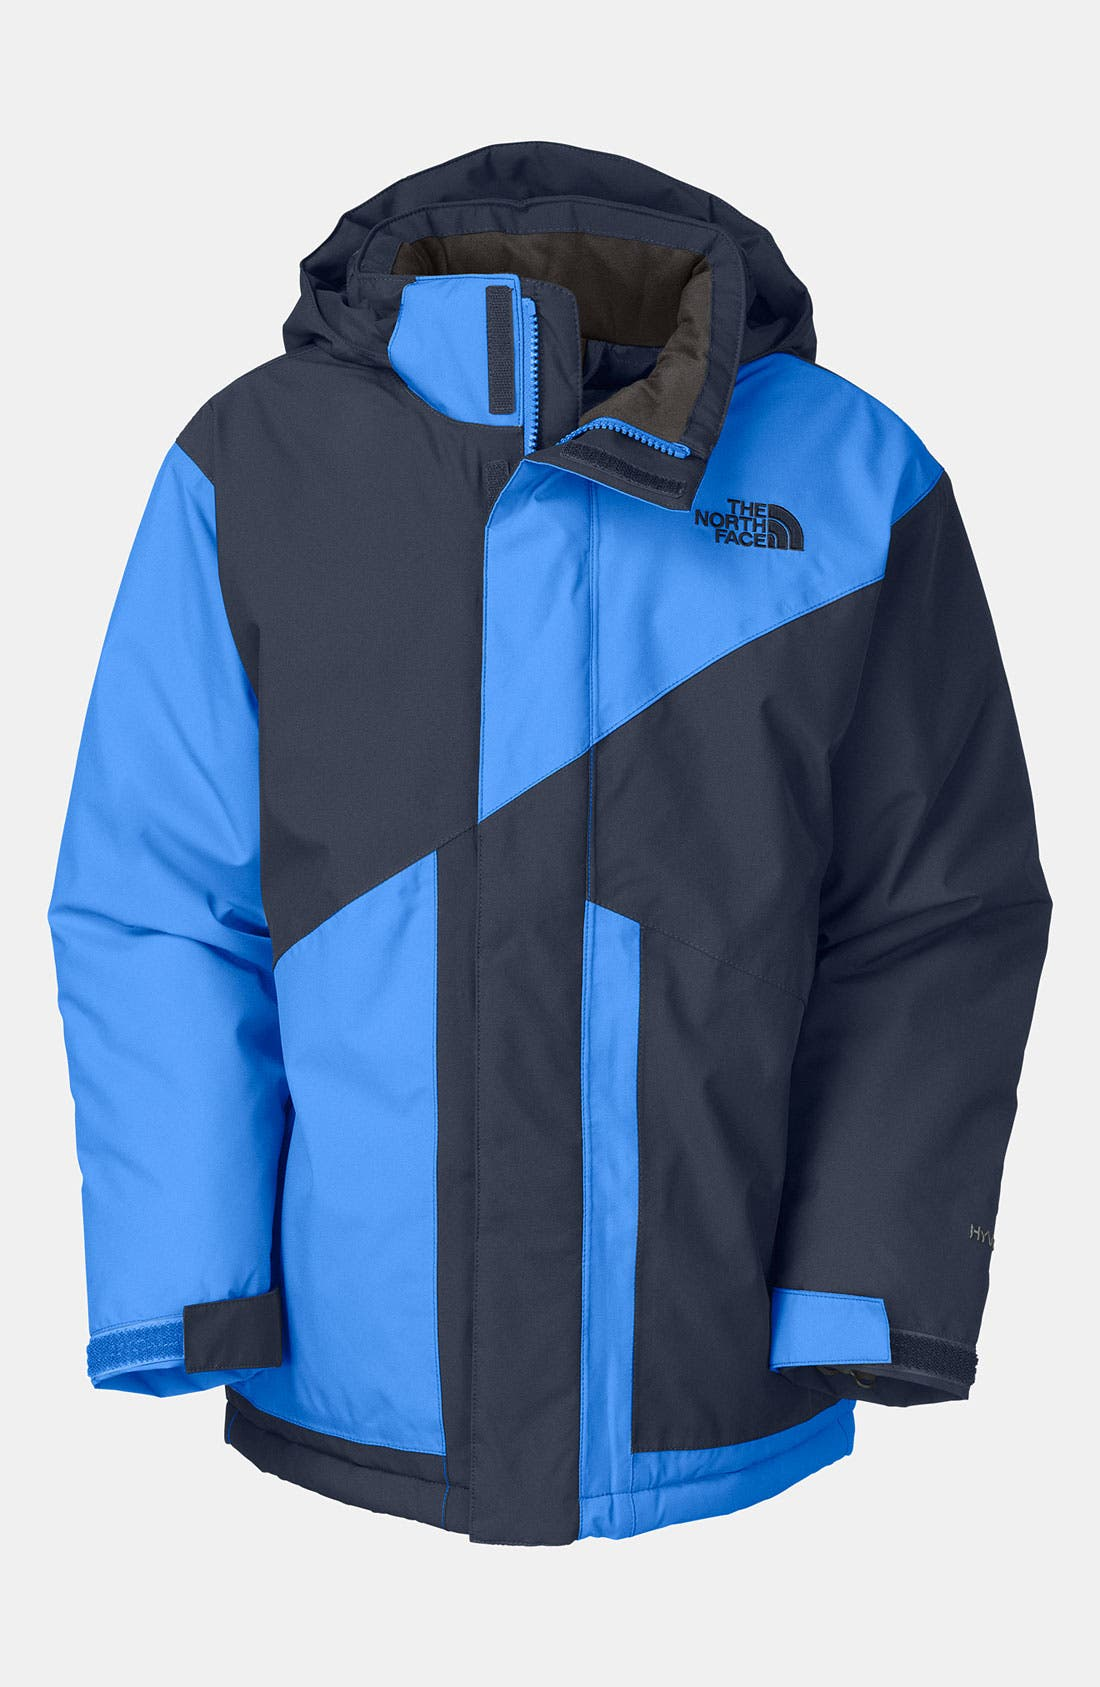 Main Image - The North Face 'Brightten' Insulated Jacket (Little Boys)